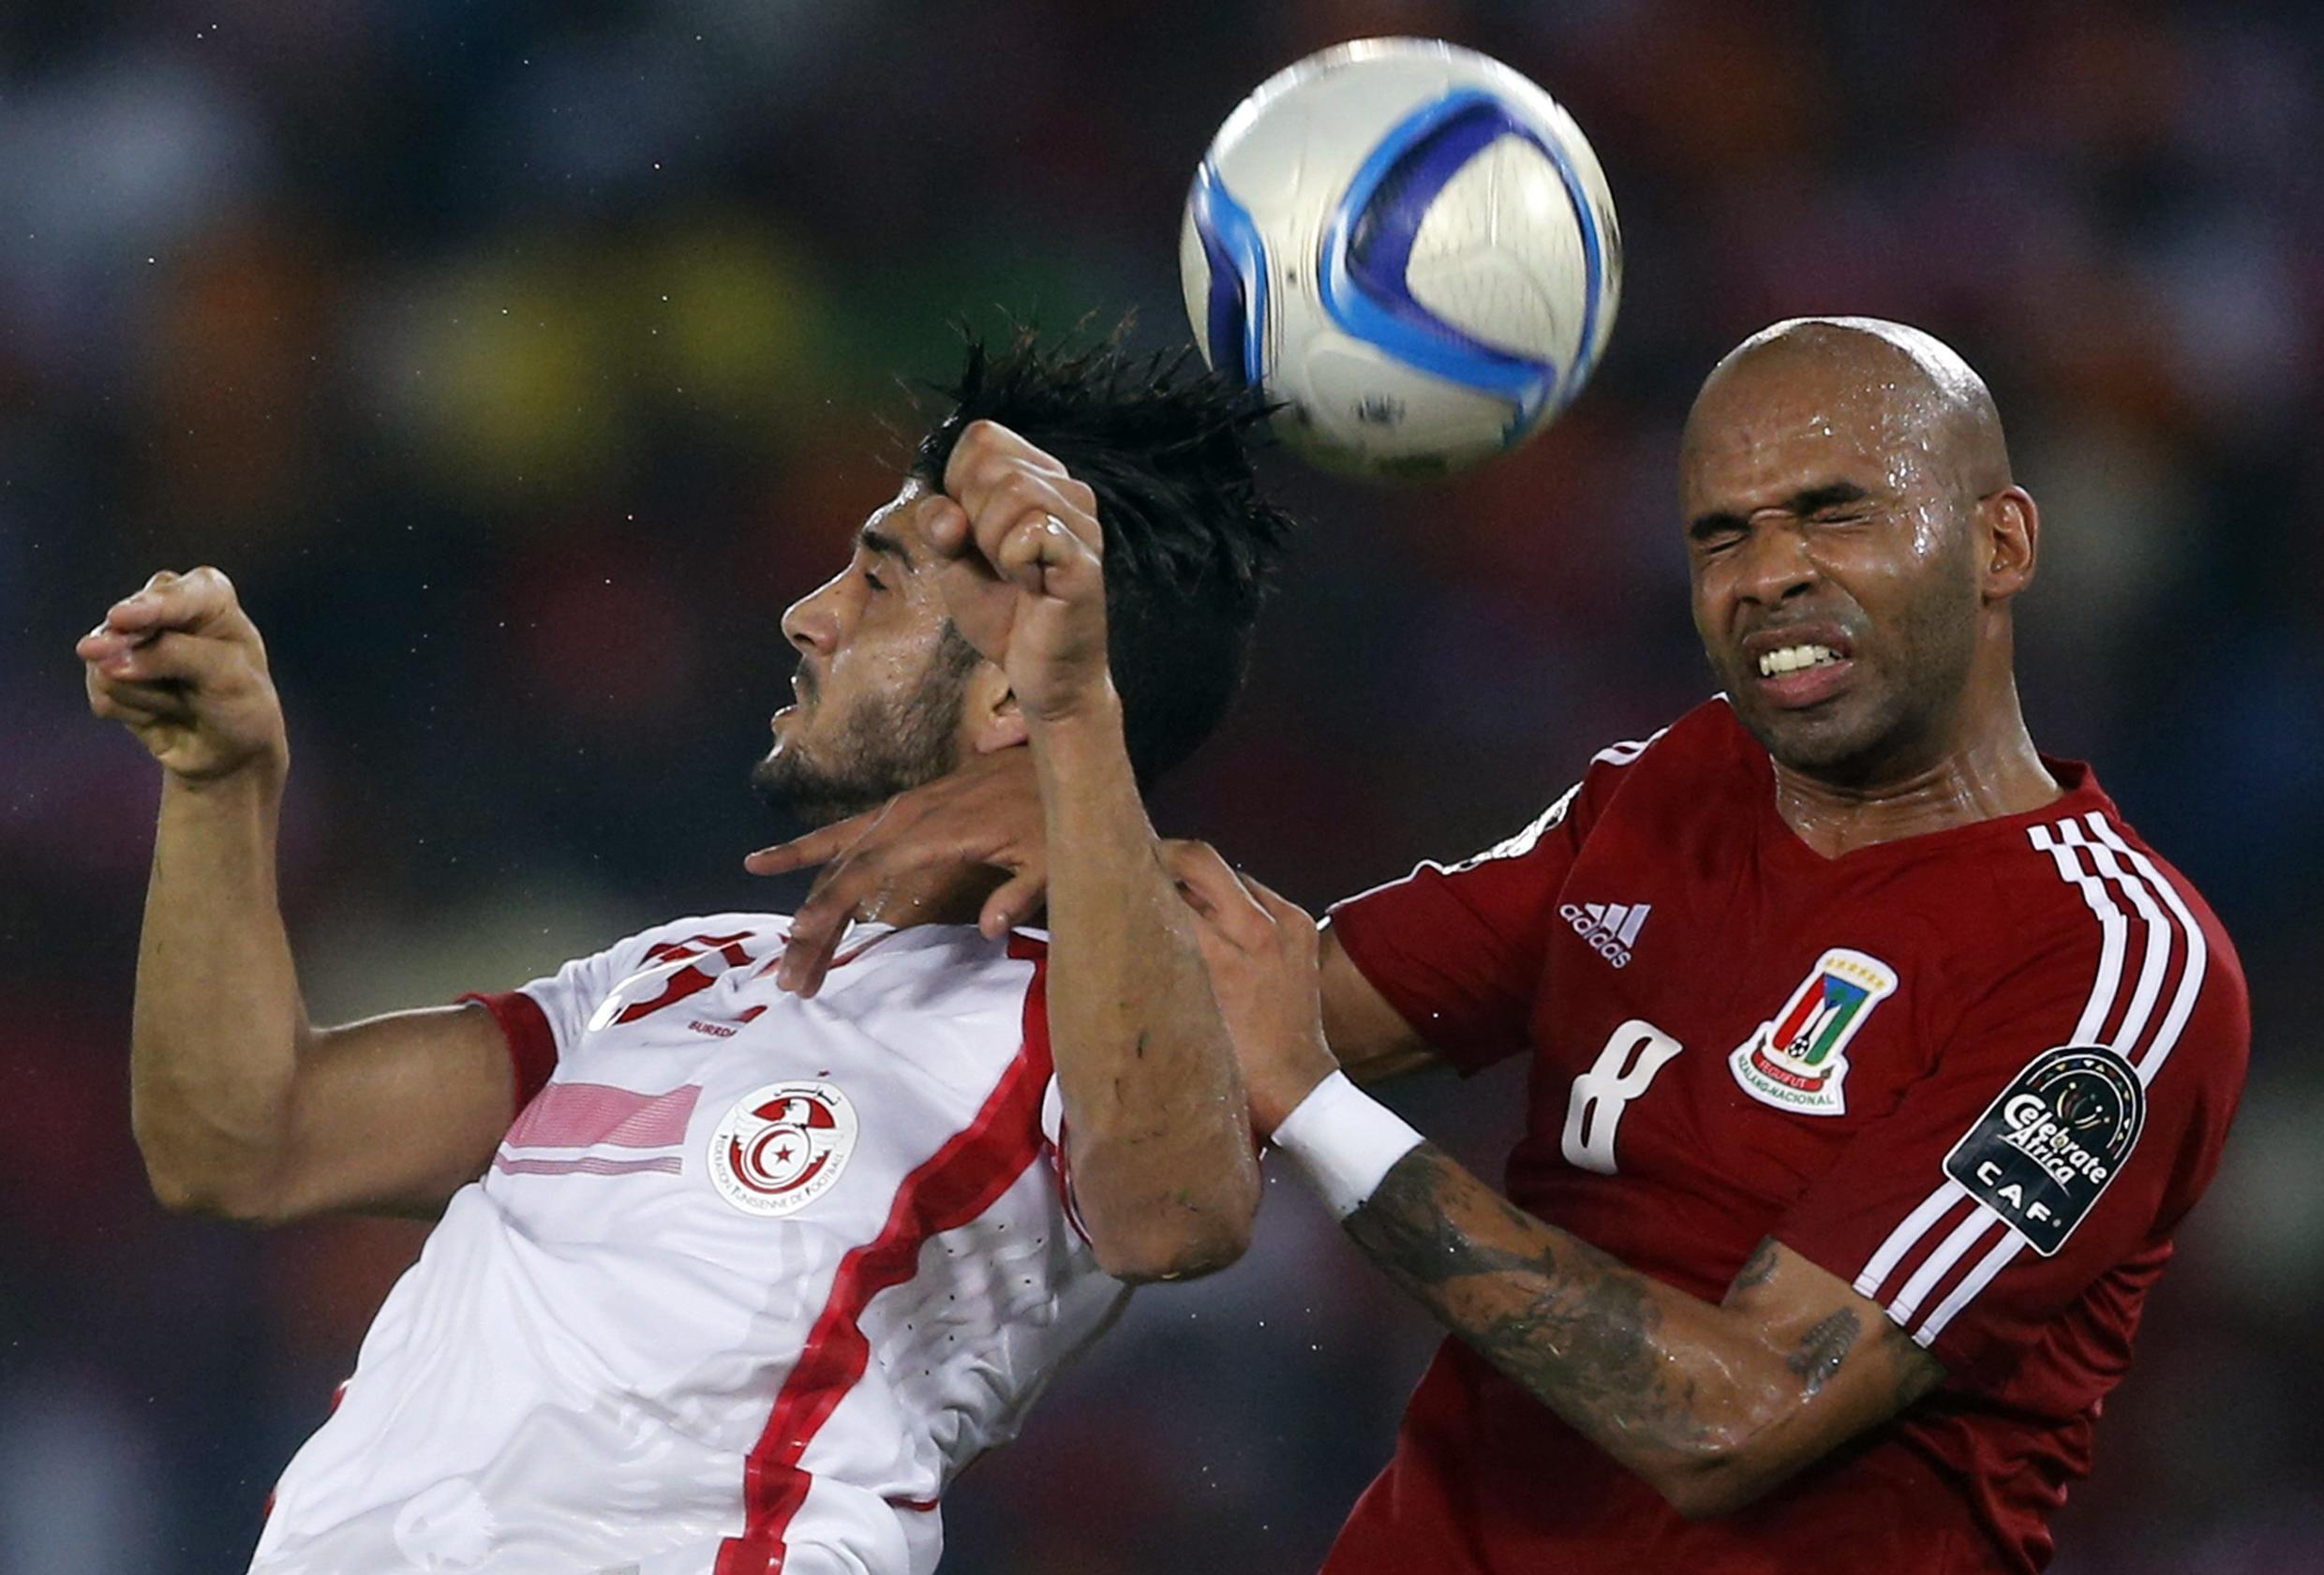 Equatorial Guinea's Iban Iyanga (R) fights for the ball with Ferjani Sassi of Tunisia during their quarter-final match in Bata